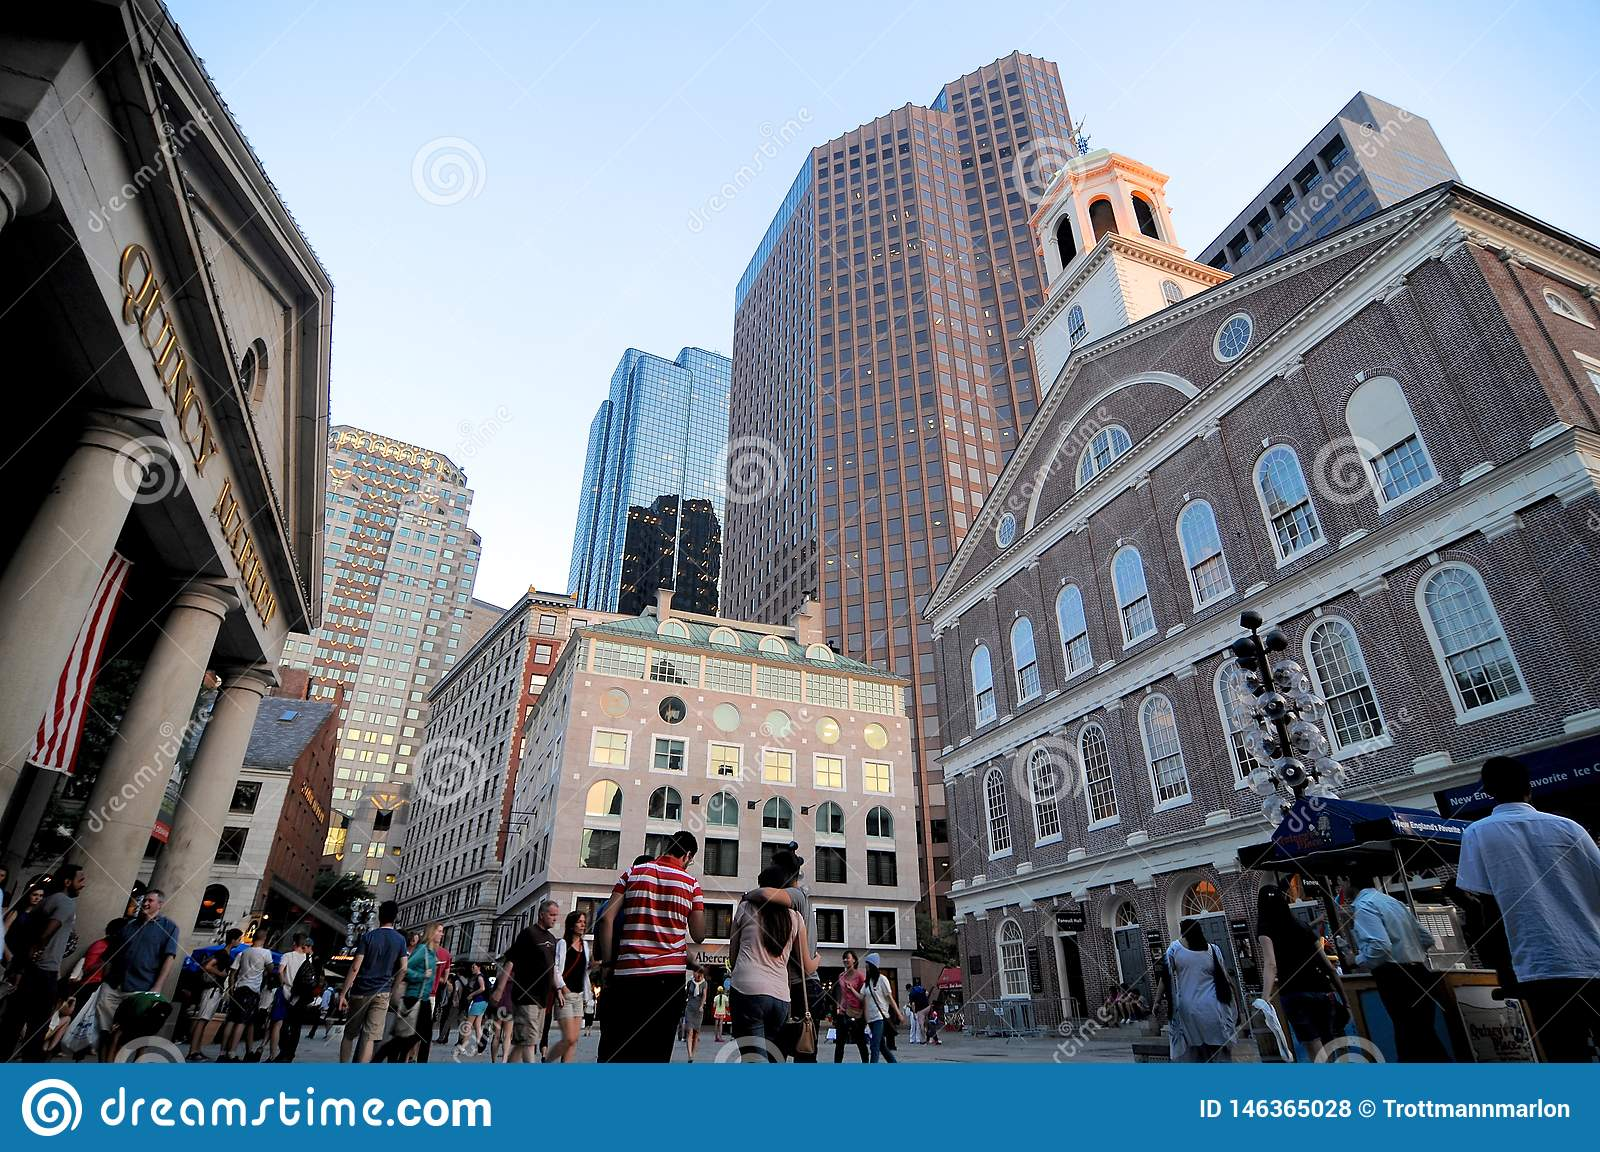 View on Quincy Market and the Faneuil Hall Building in Boston Downtown